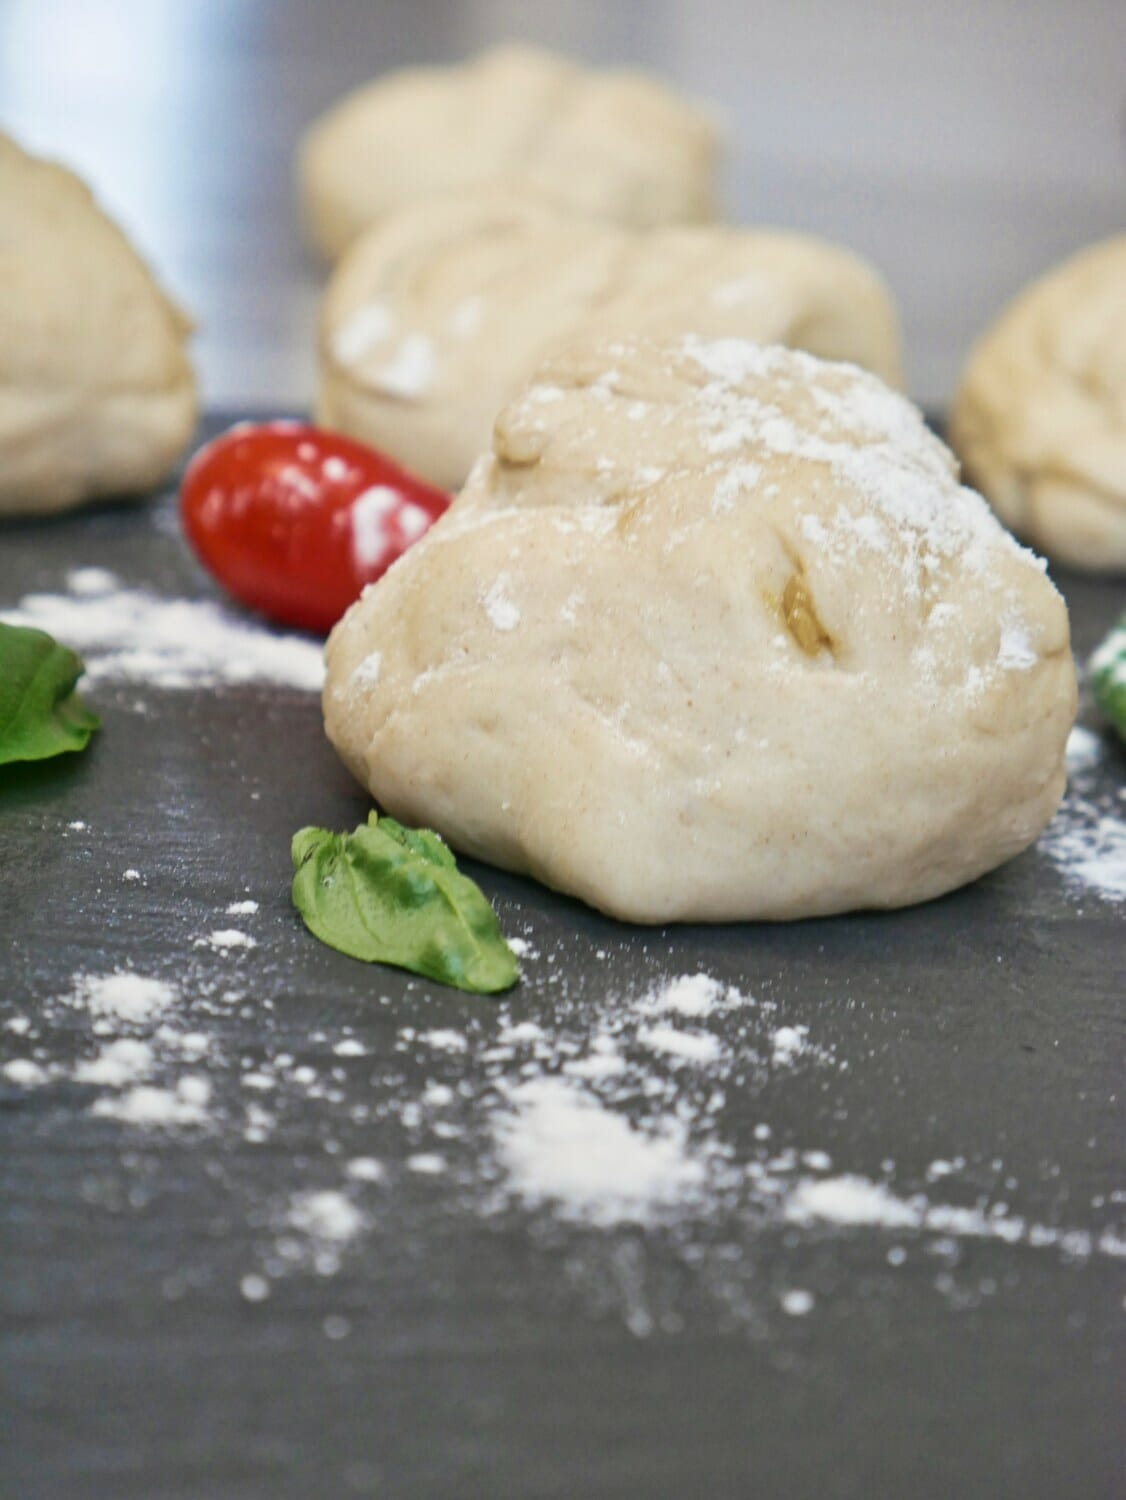 ball of uncooked pizza dough with flour on it